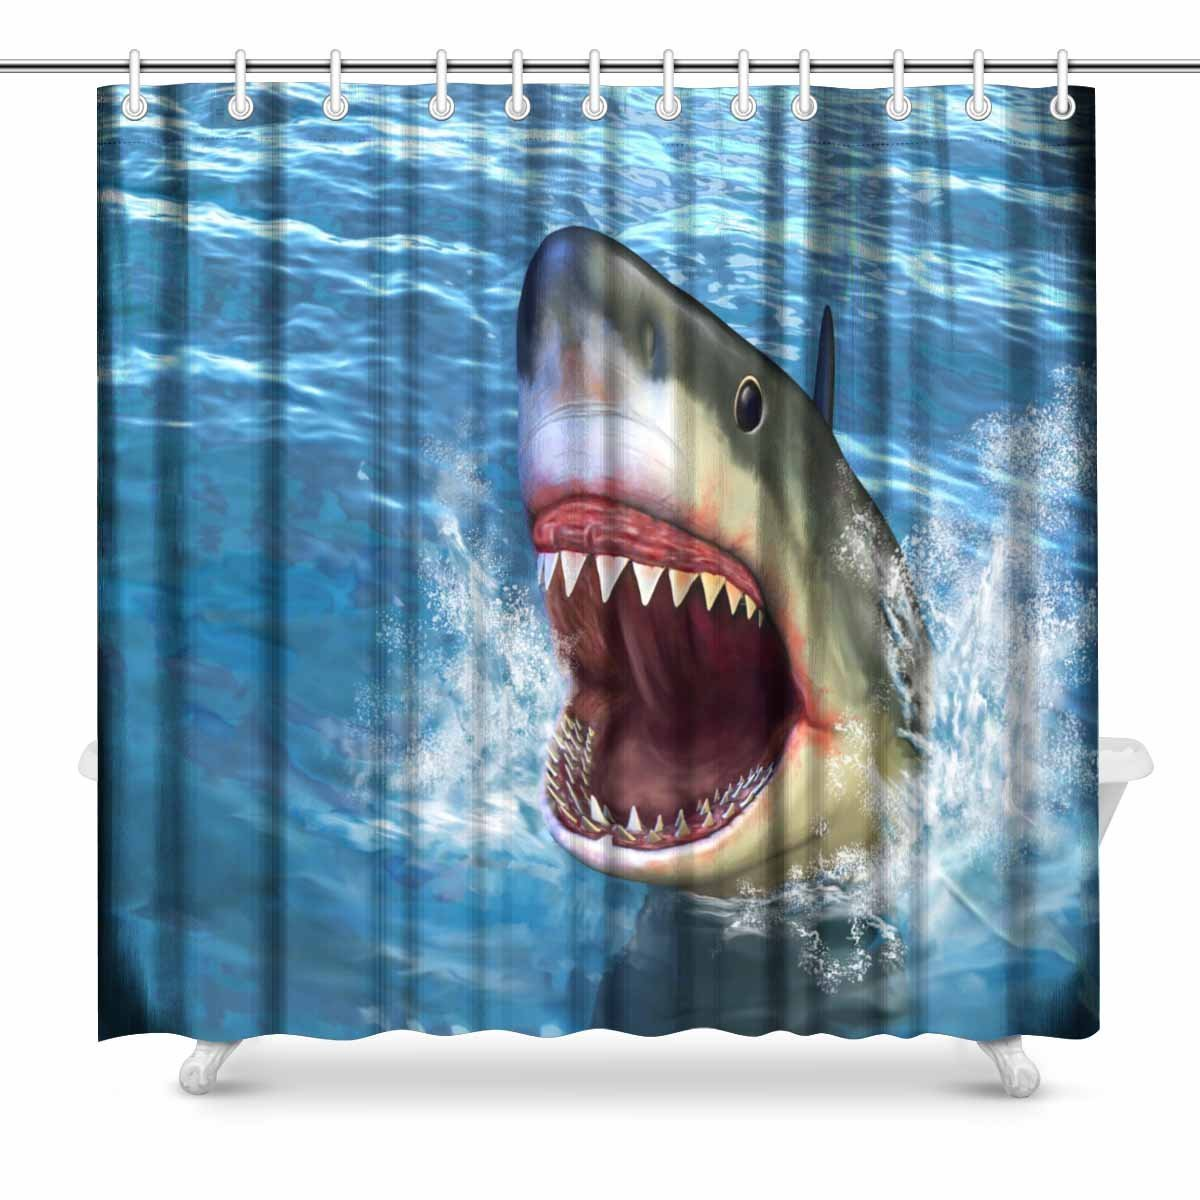 Aplysia great white shark jumping out of water with its open mouth bathroom shower curtain for How do sharks use the bathroom